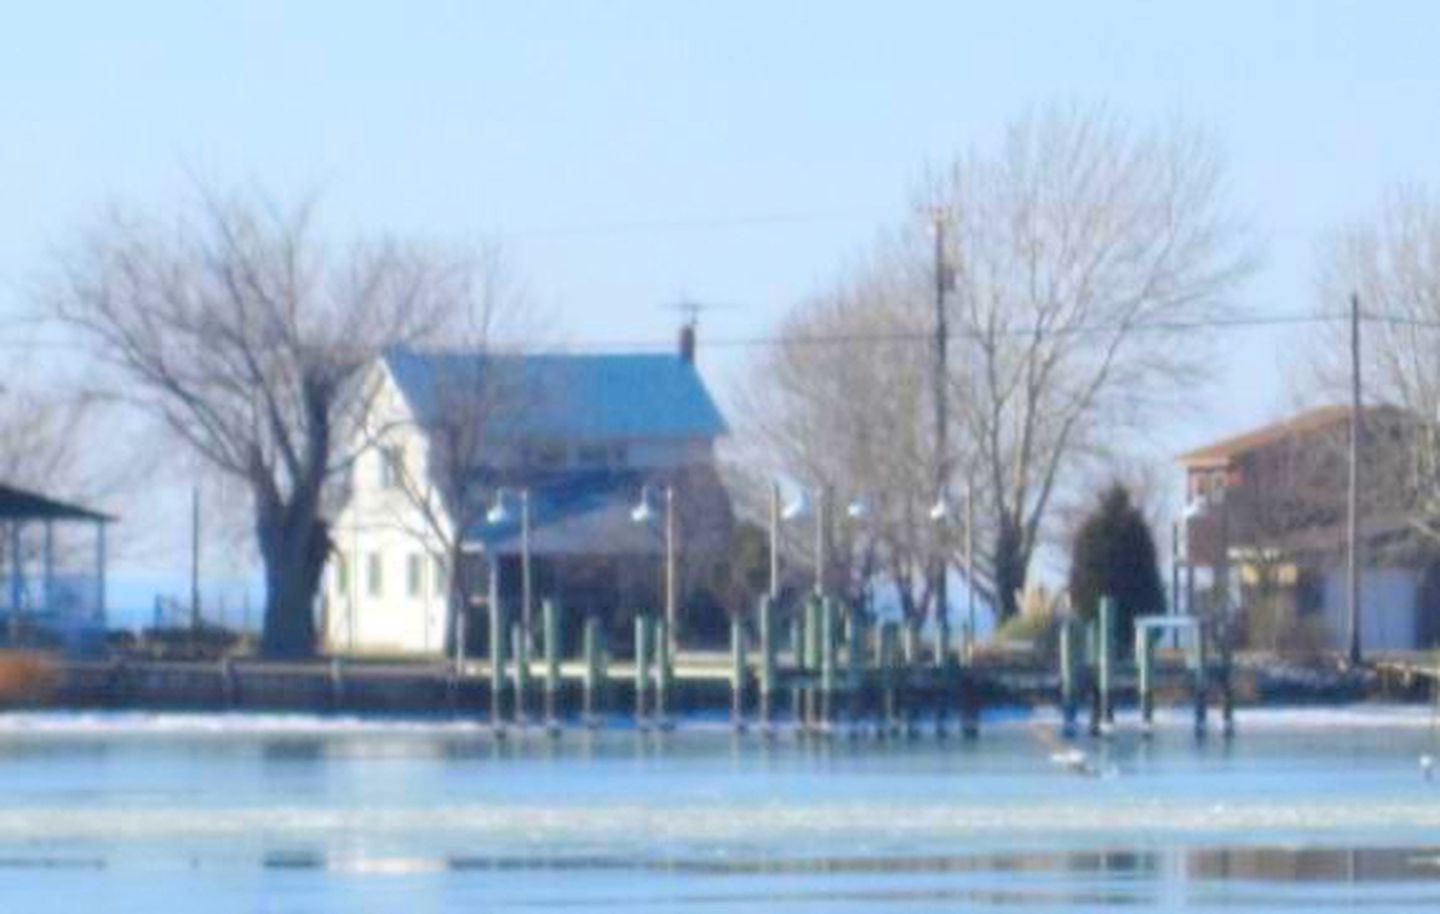 Cabins (Fishing Creek, Maryland, United States)